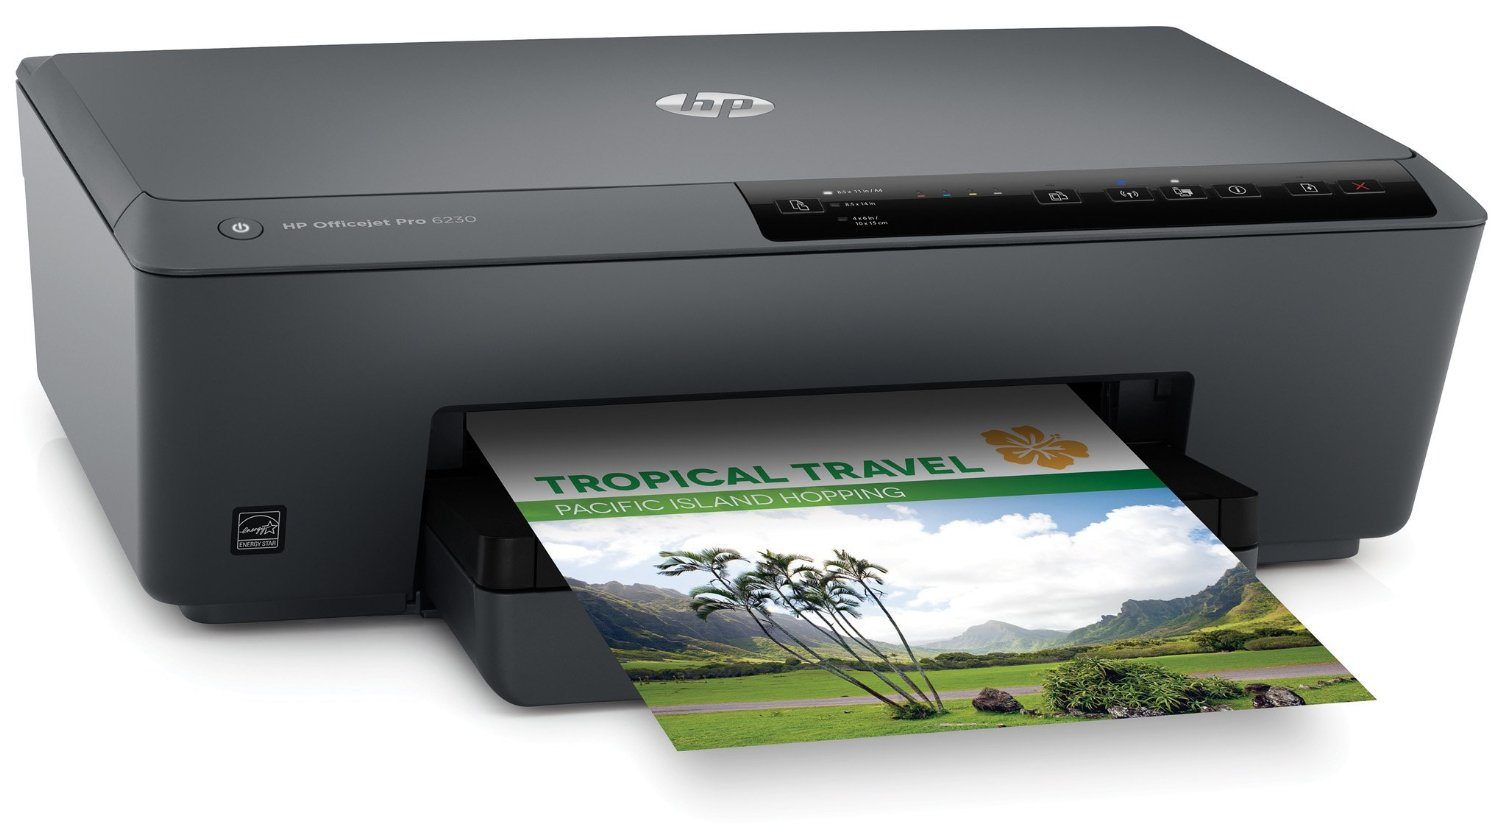 compra HP OfficeJet Pro 6230 opiniones